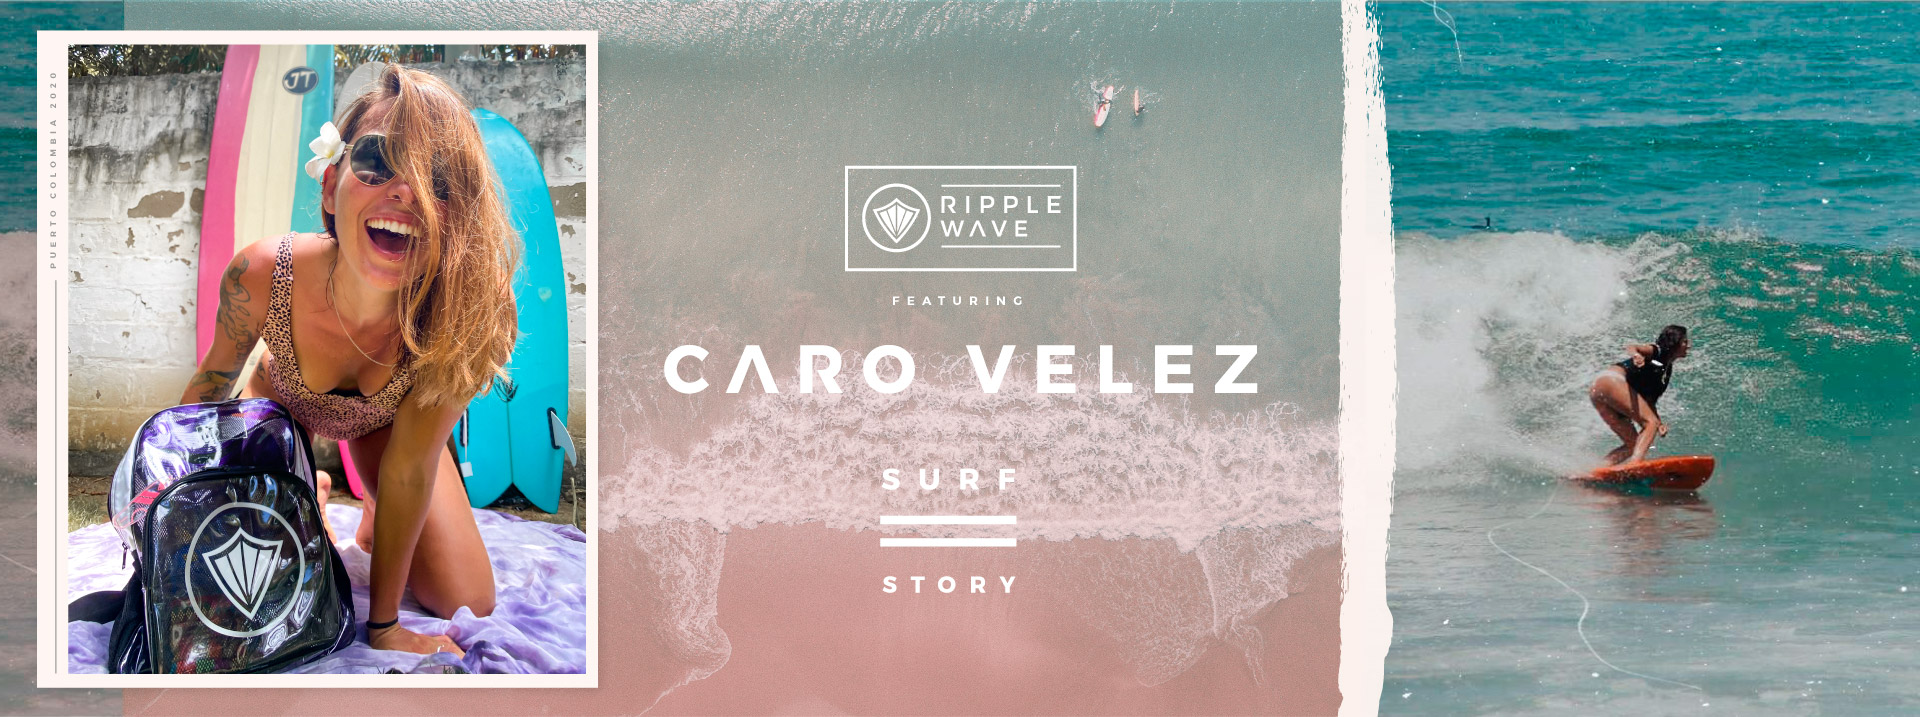 Carolina Velez Surf Portada